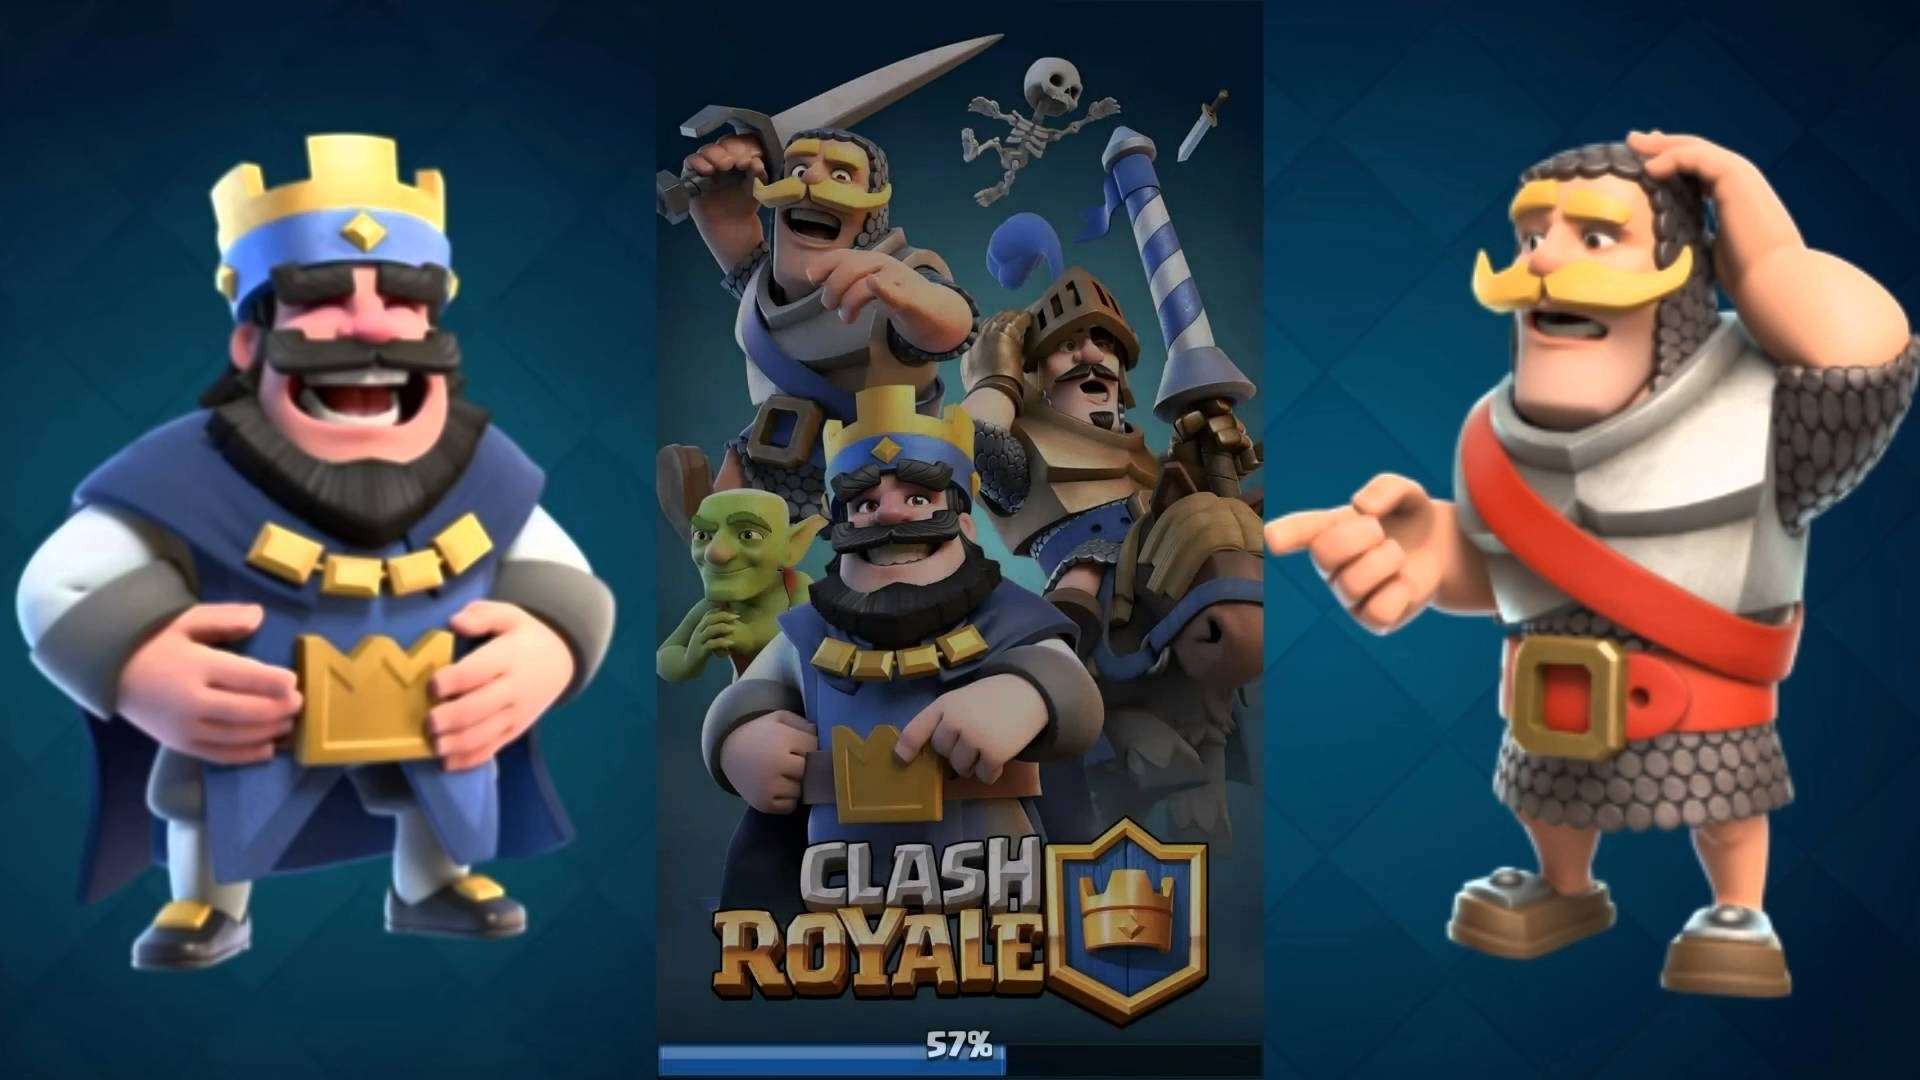 1920x1080 Clash Royale Wallpapers - Wallpaper Cave within Clash Royale Game Wallpapers  Hd